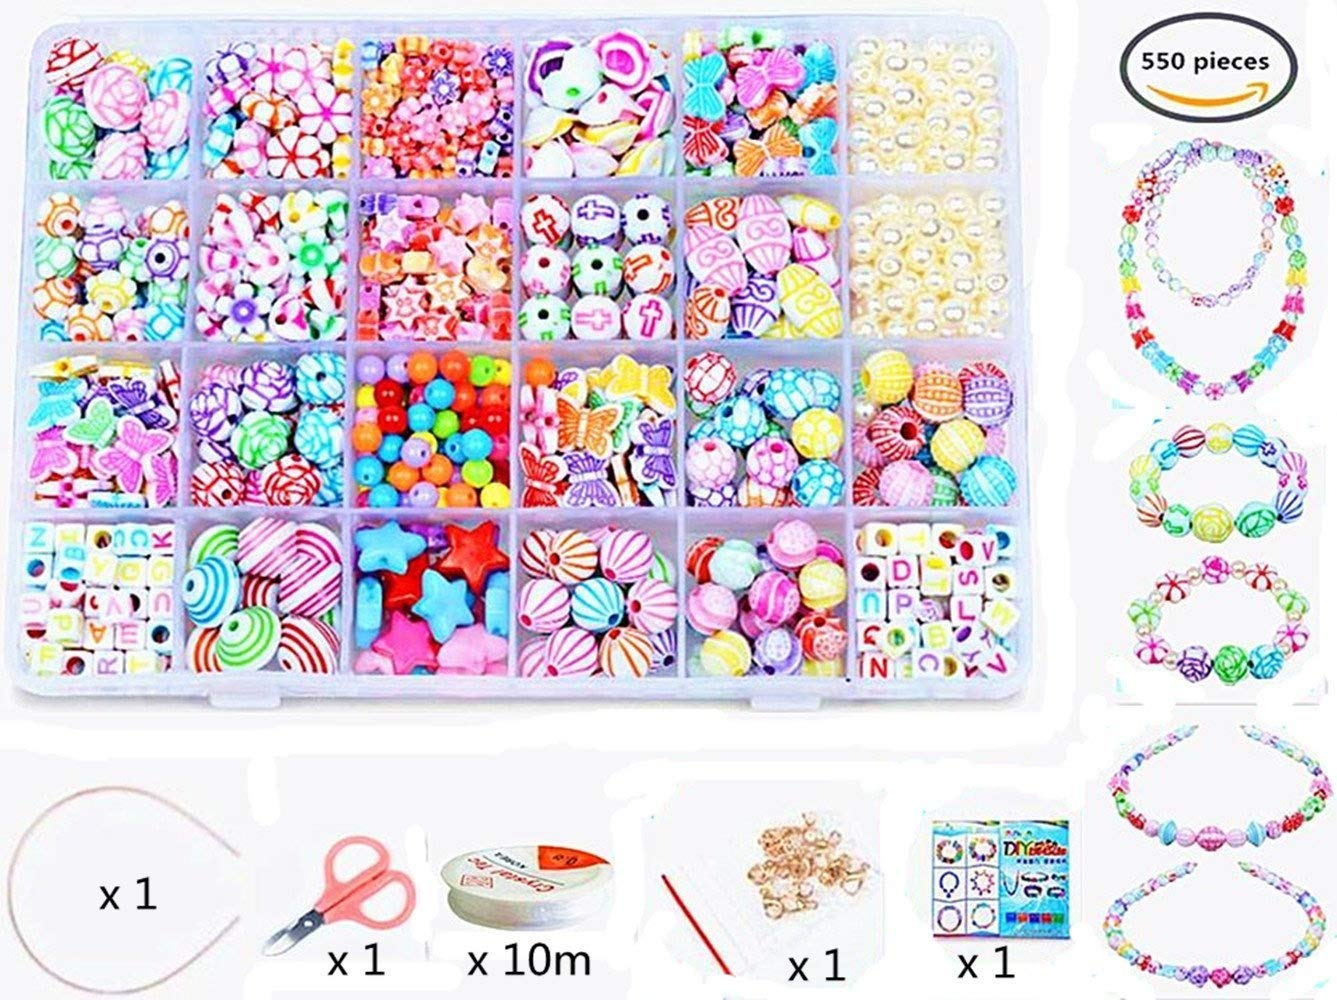 Vytung Beads Set for Jewelry Making Kids Adults Children Craft DIY Necklace Bracelets Letter Alphabet Colorful Acrylic Crafting Beads Kit Box with Accessories(color#6)